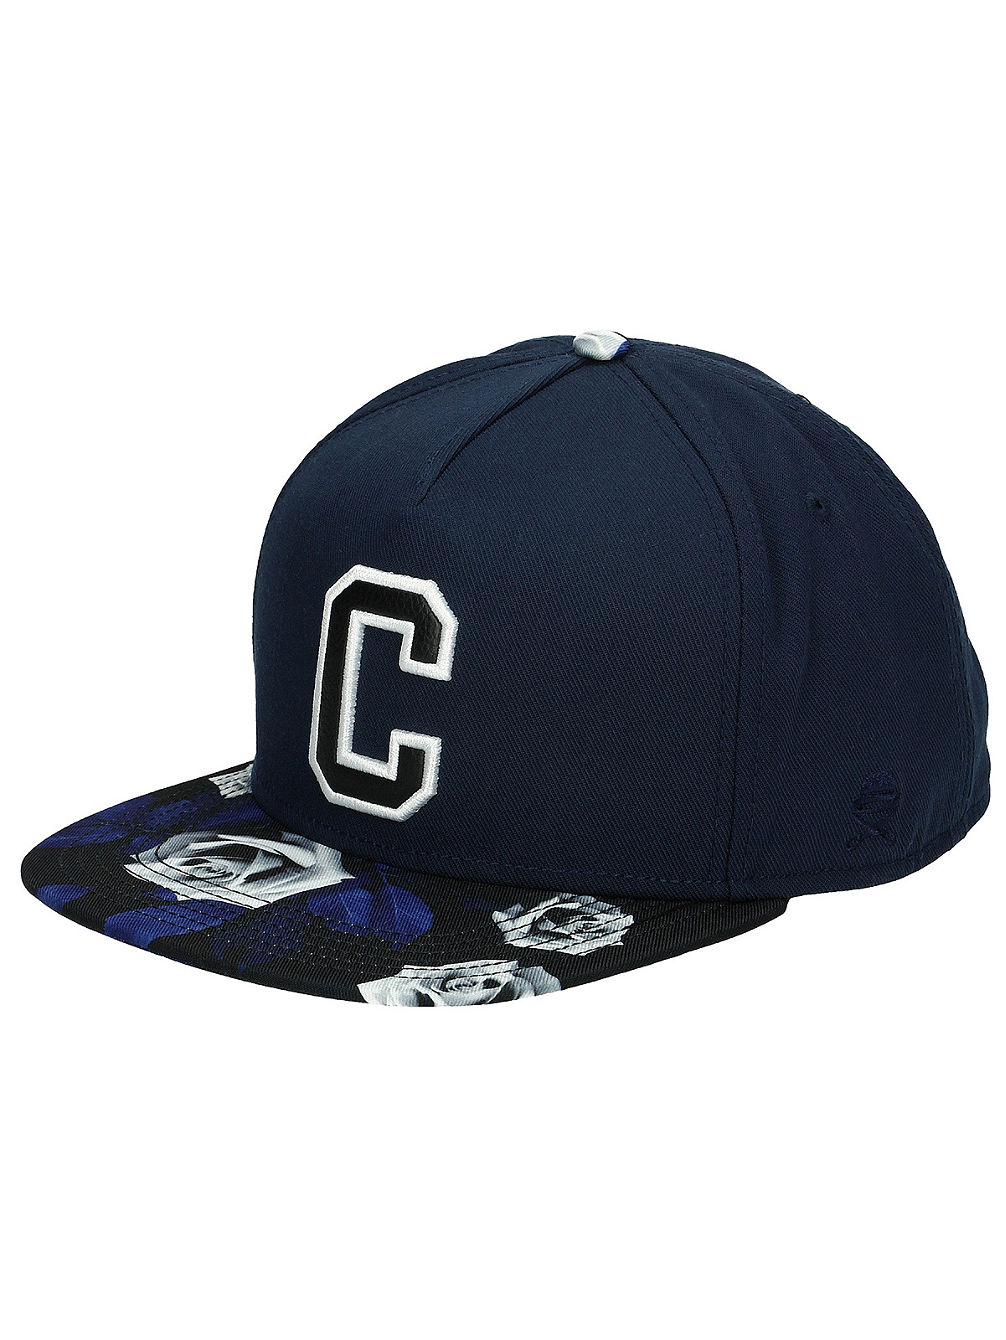 cayler-sons-gld-cee-rosed-up-cap